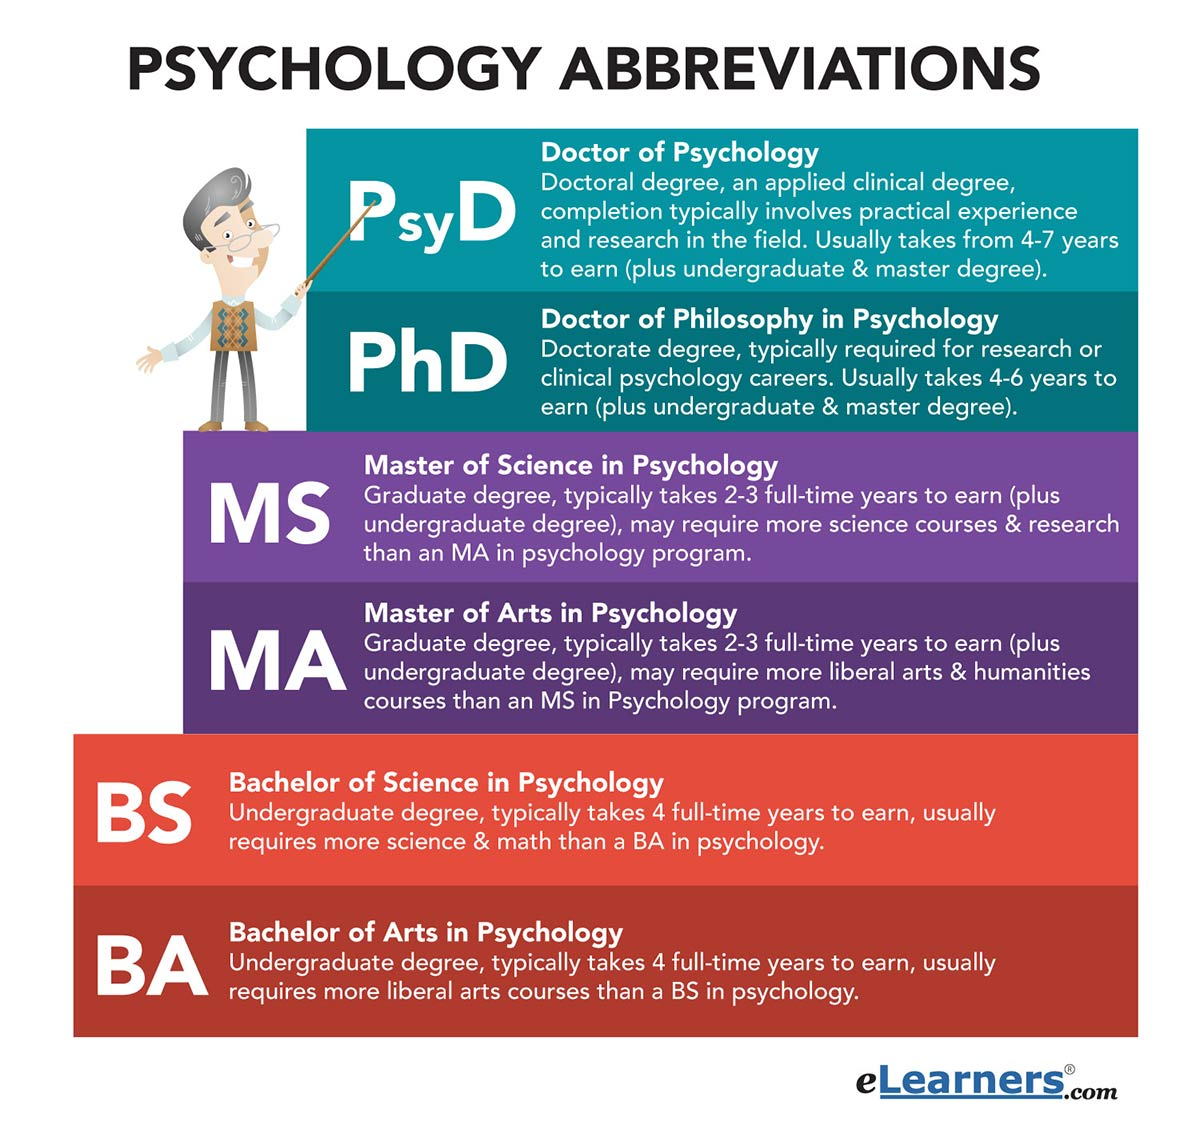 WHAT IS A MASTER'S DEGREE IN PSYCHOLOGY?